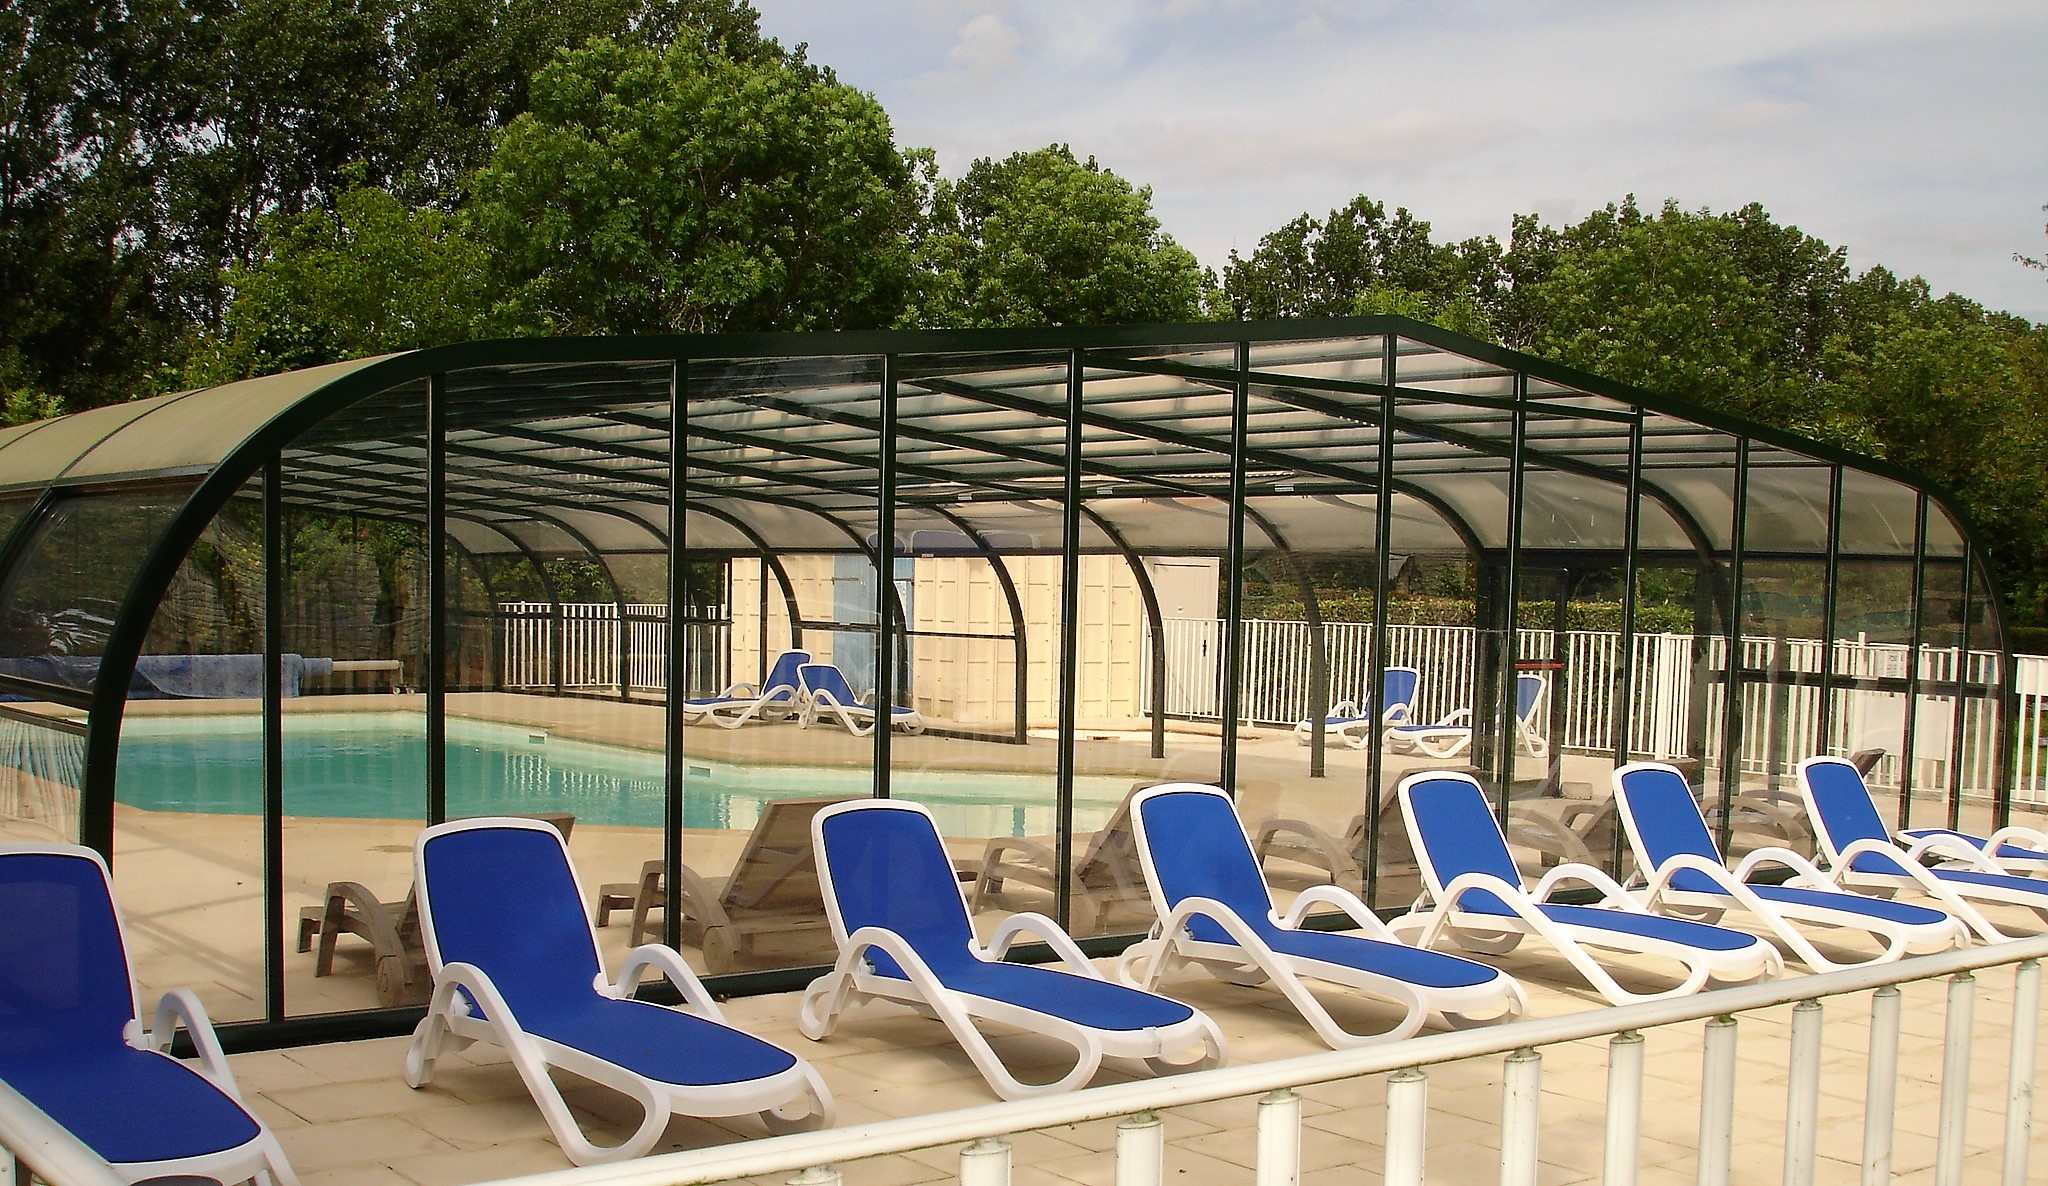 Camping le septentrion brulon camp de tourisme for Piscine ouverte